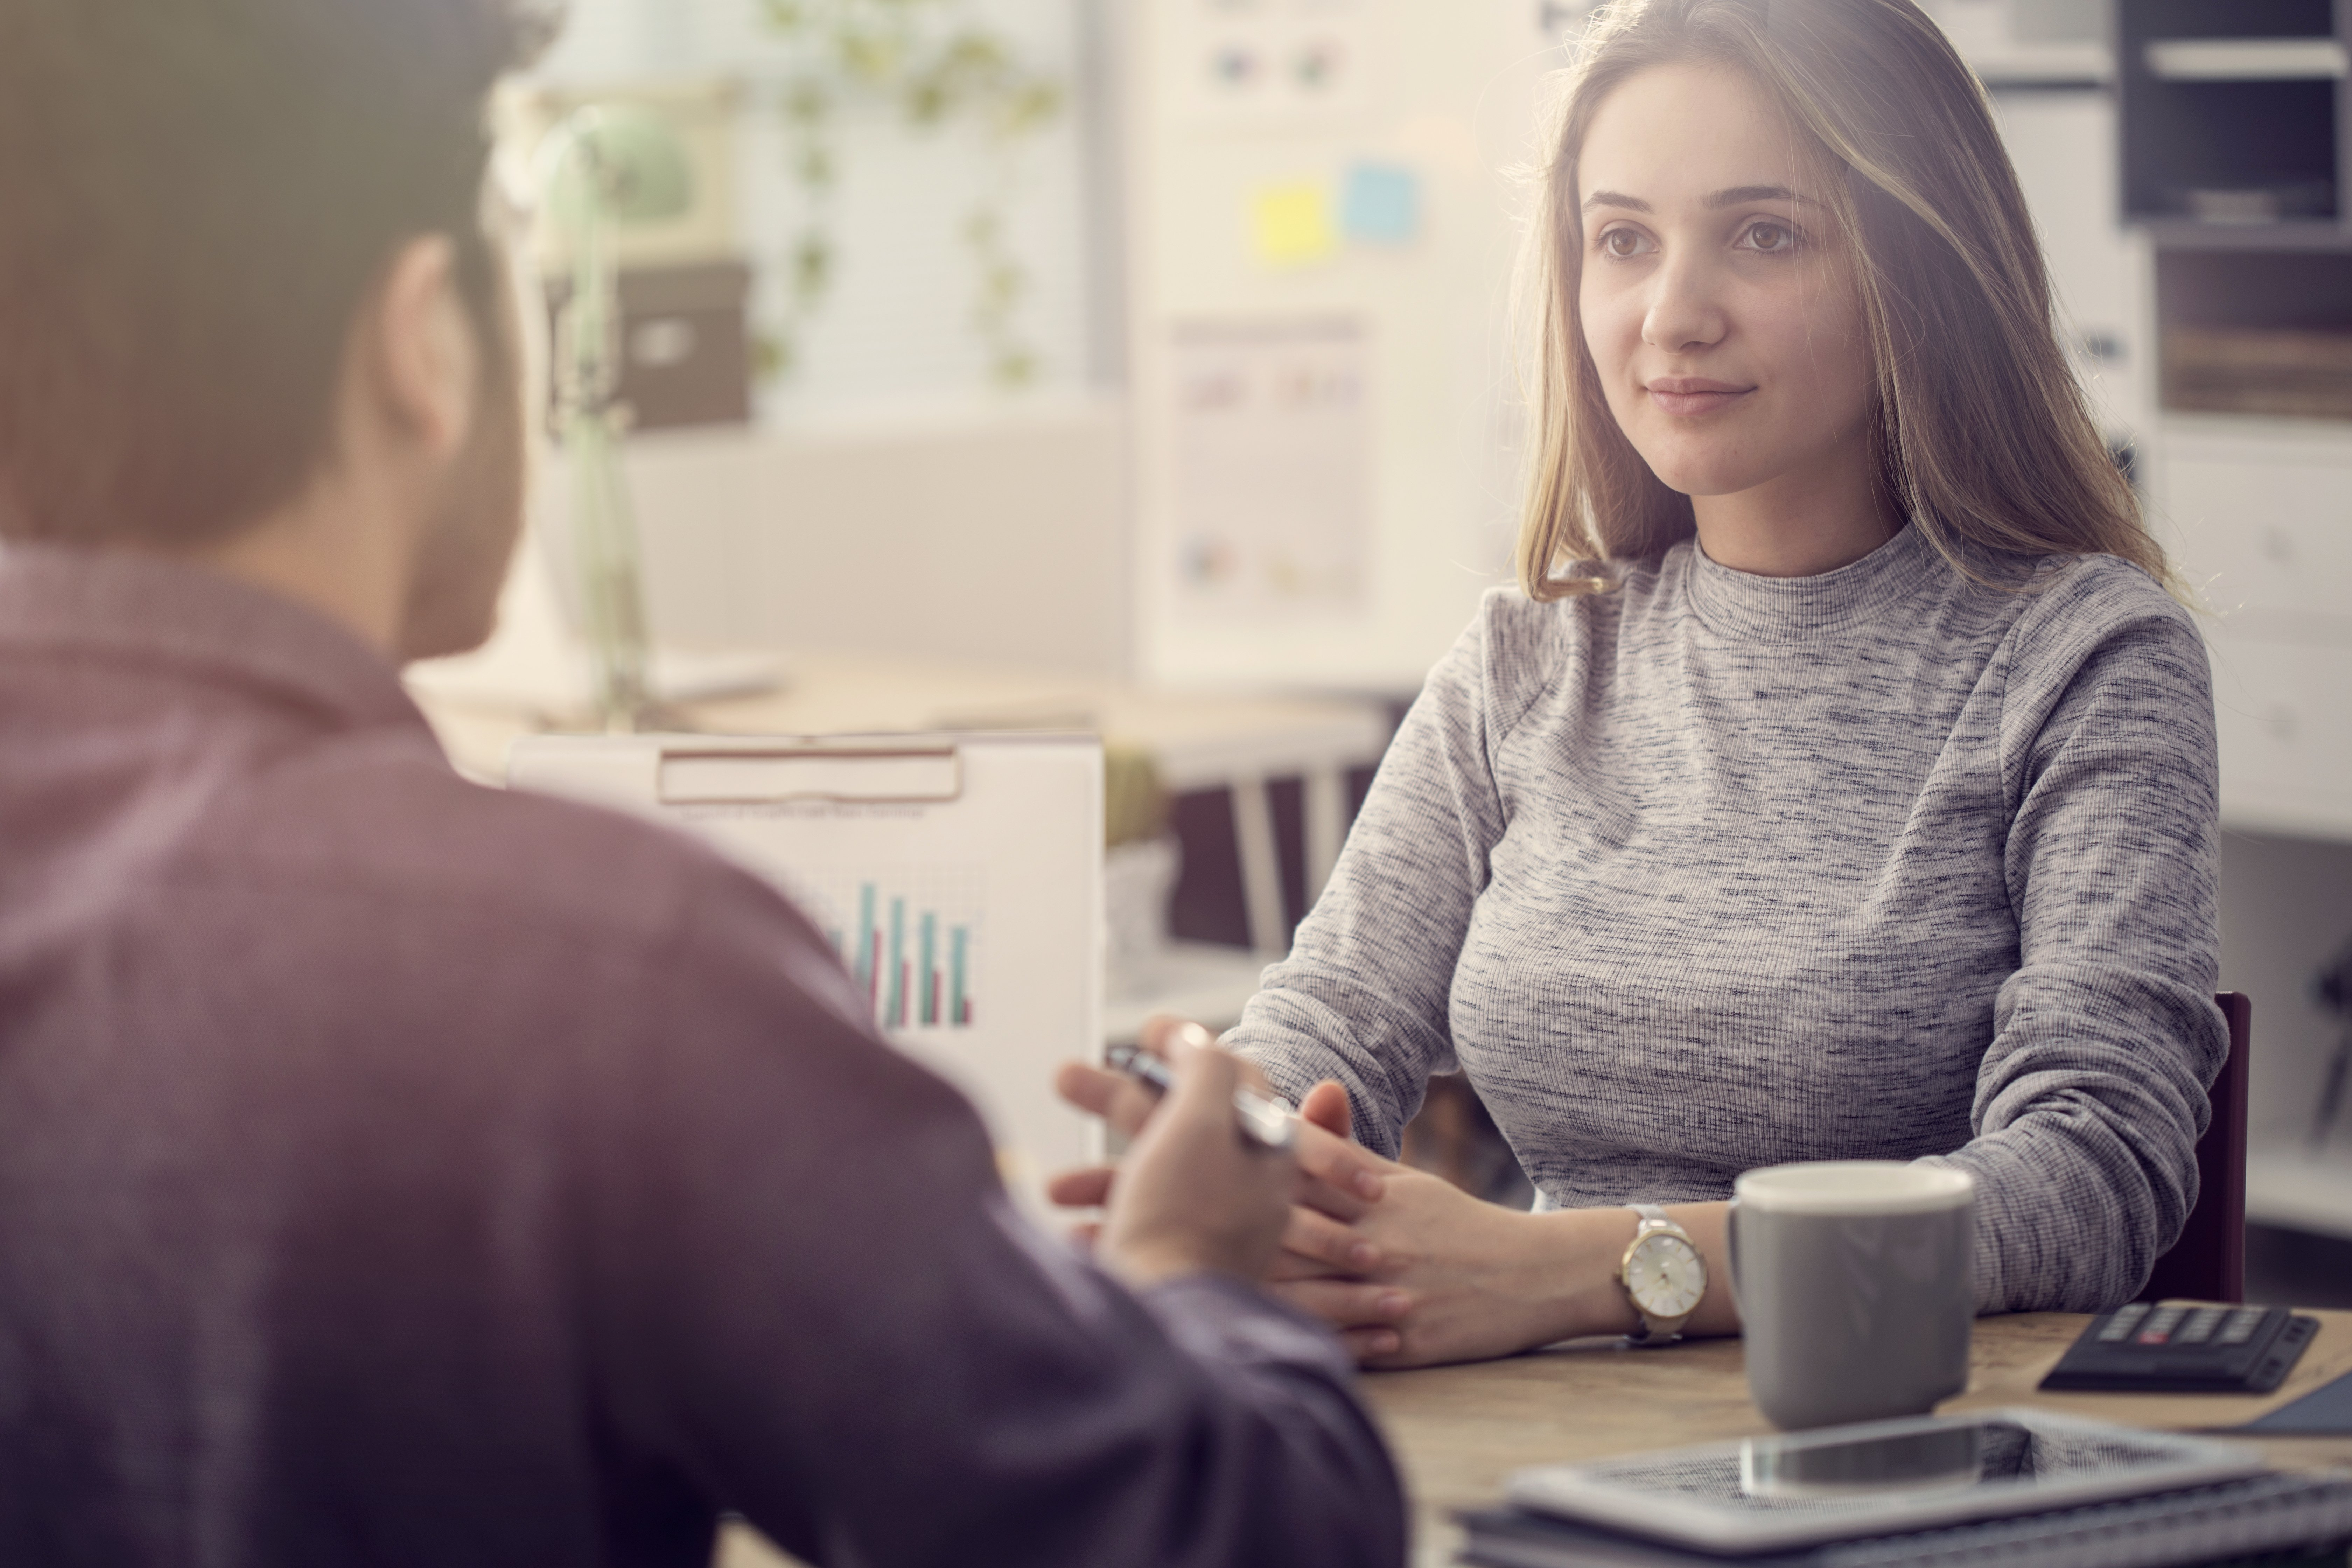 Nailing Down Responses To The Most Common Interview Questions